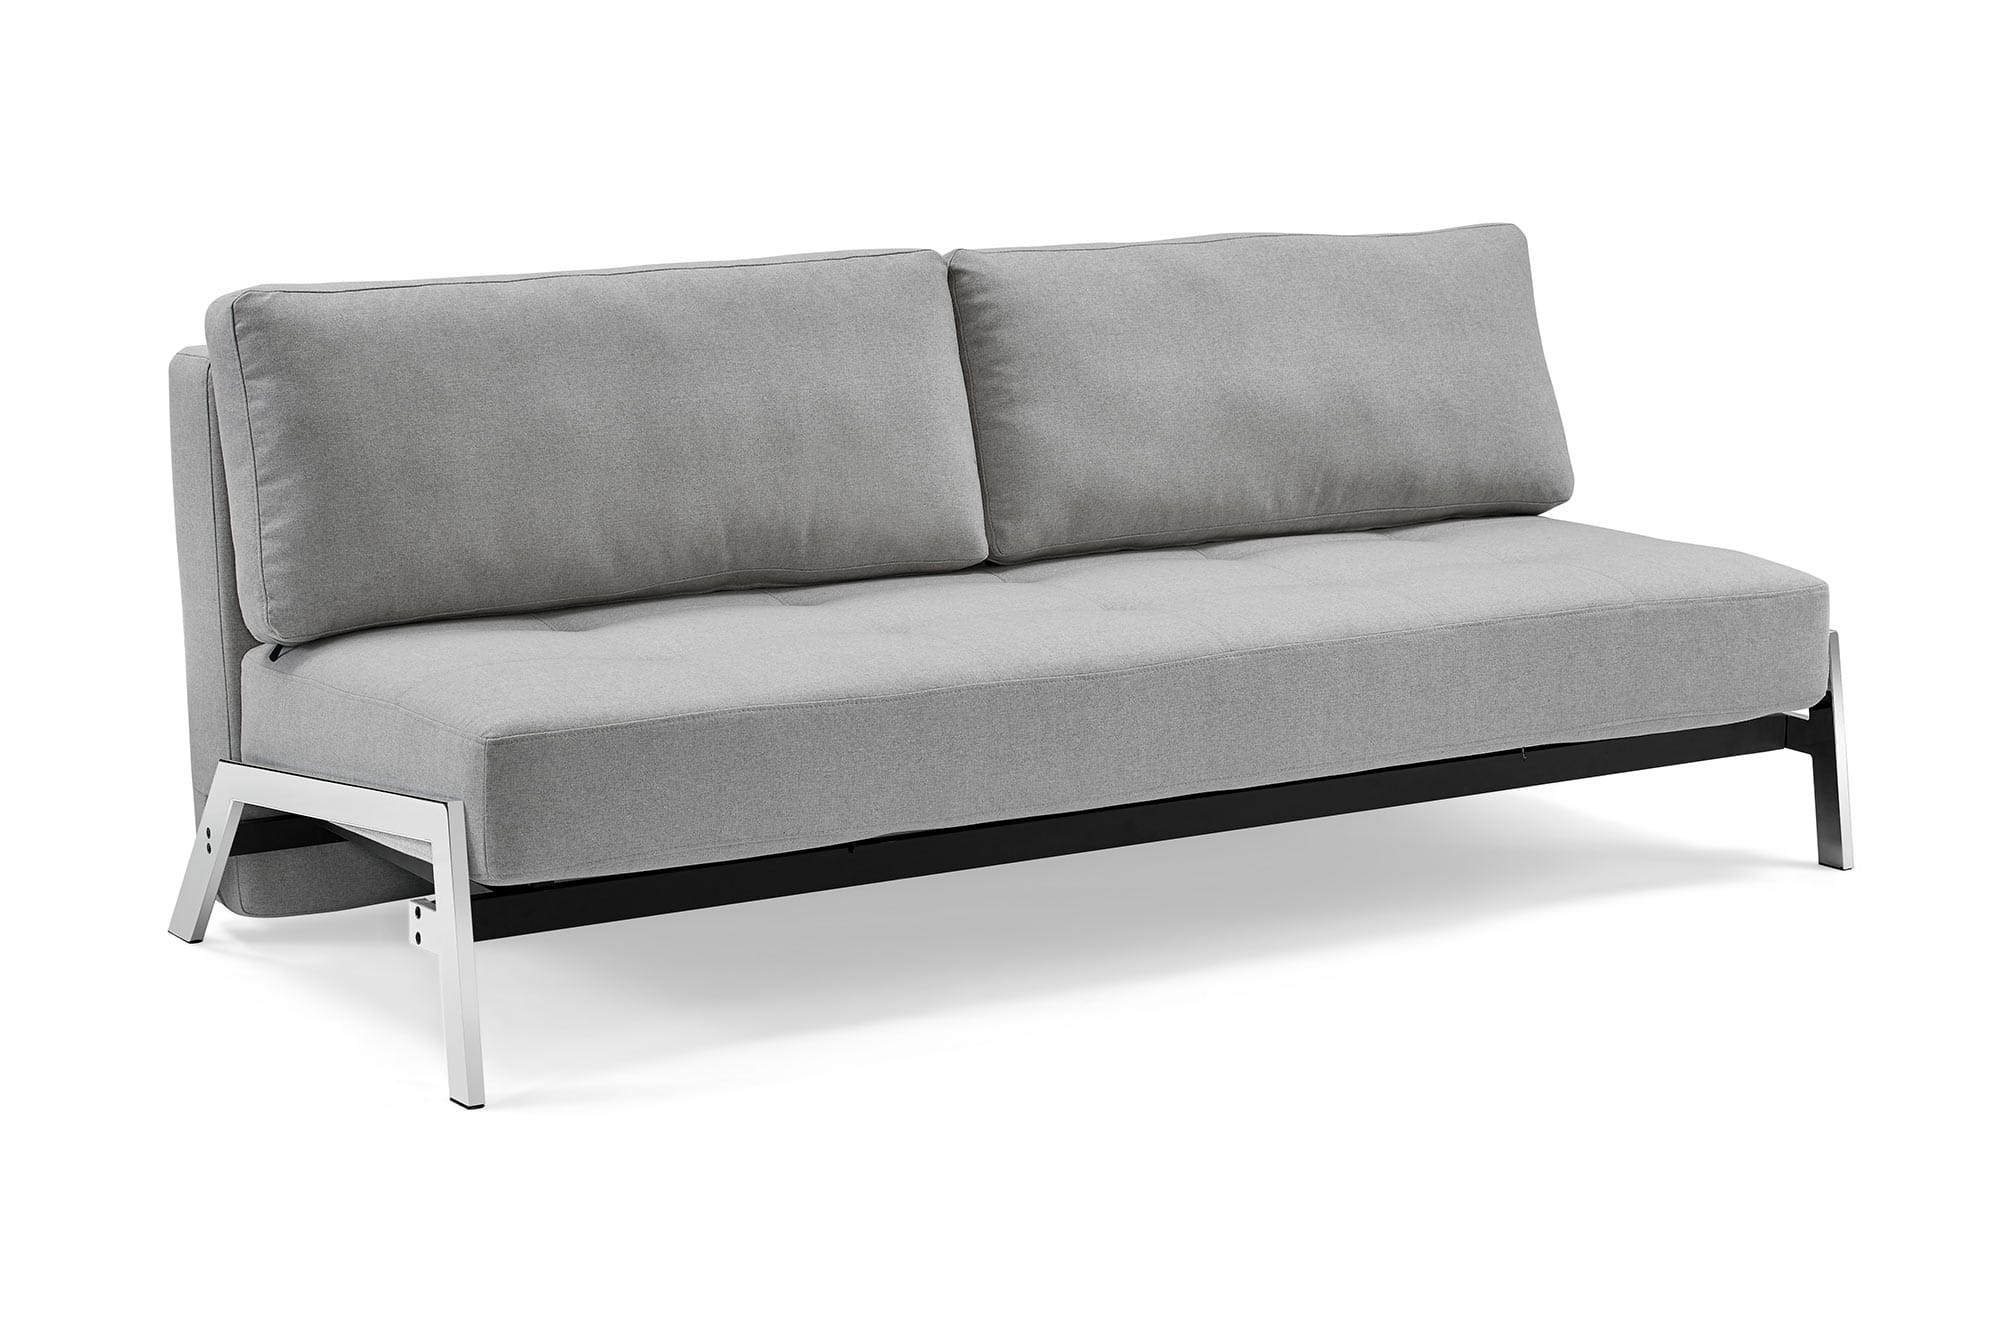 Futon Convertible 1 Place Borolo Madrid Gray Dropback Sofa Convertible By Sealy